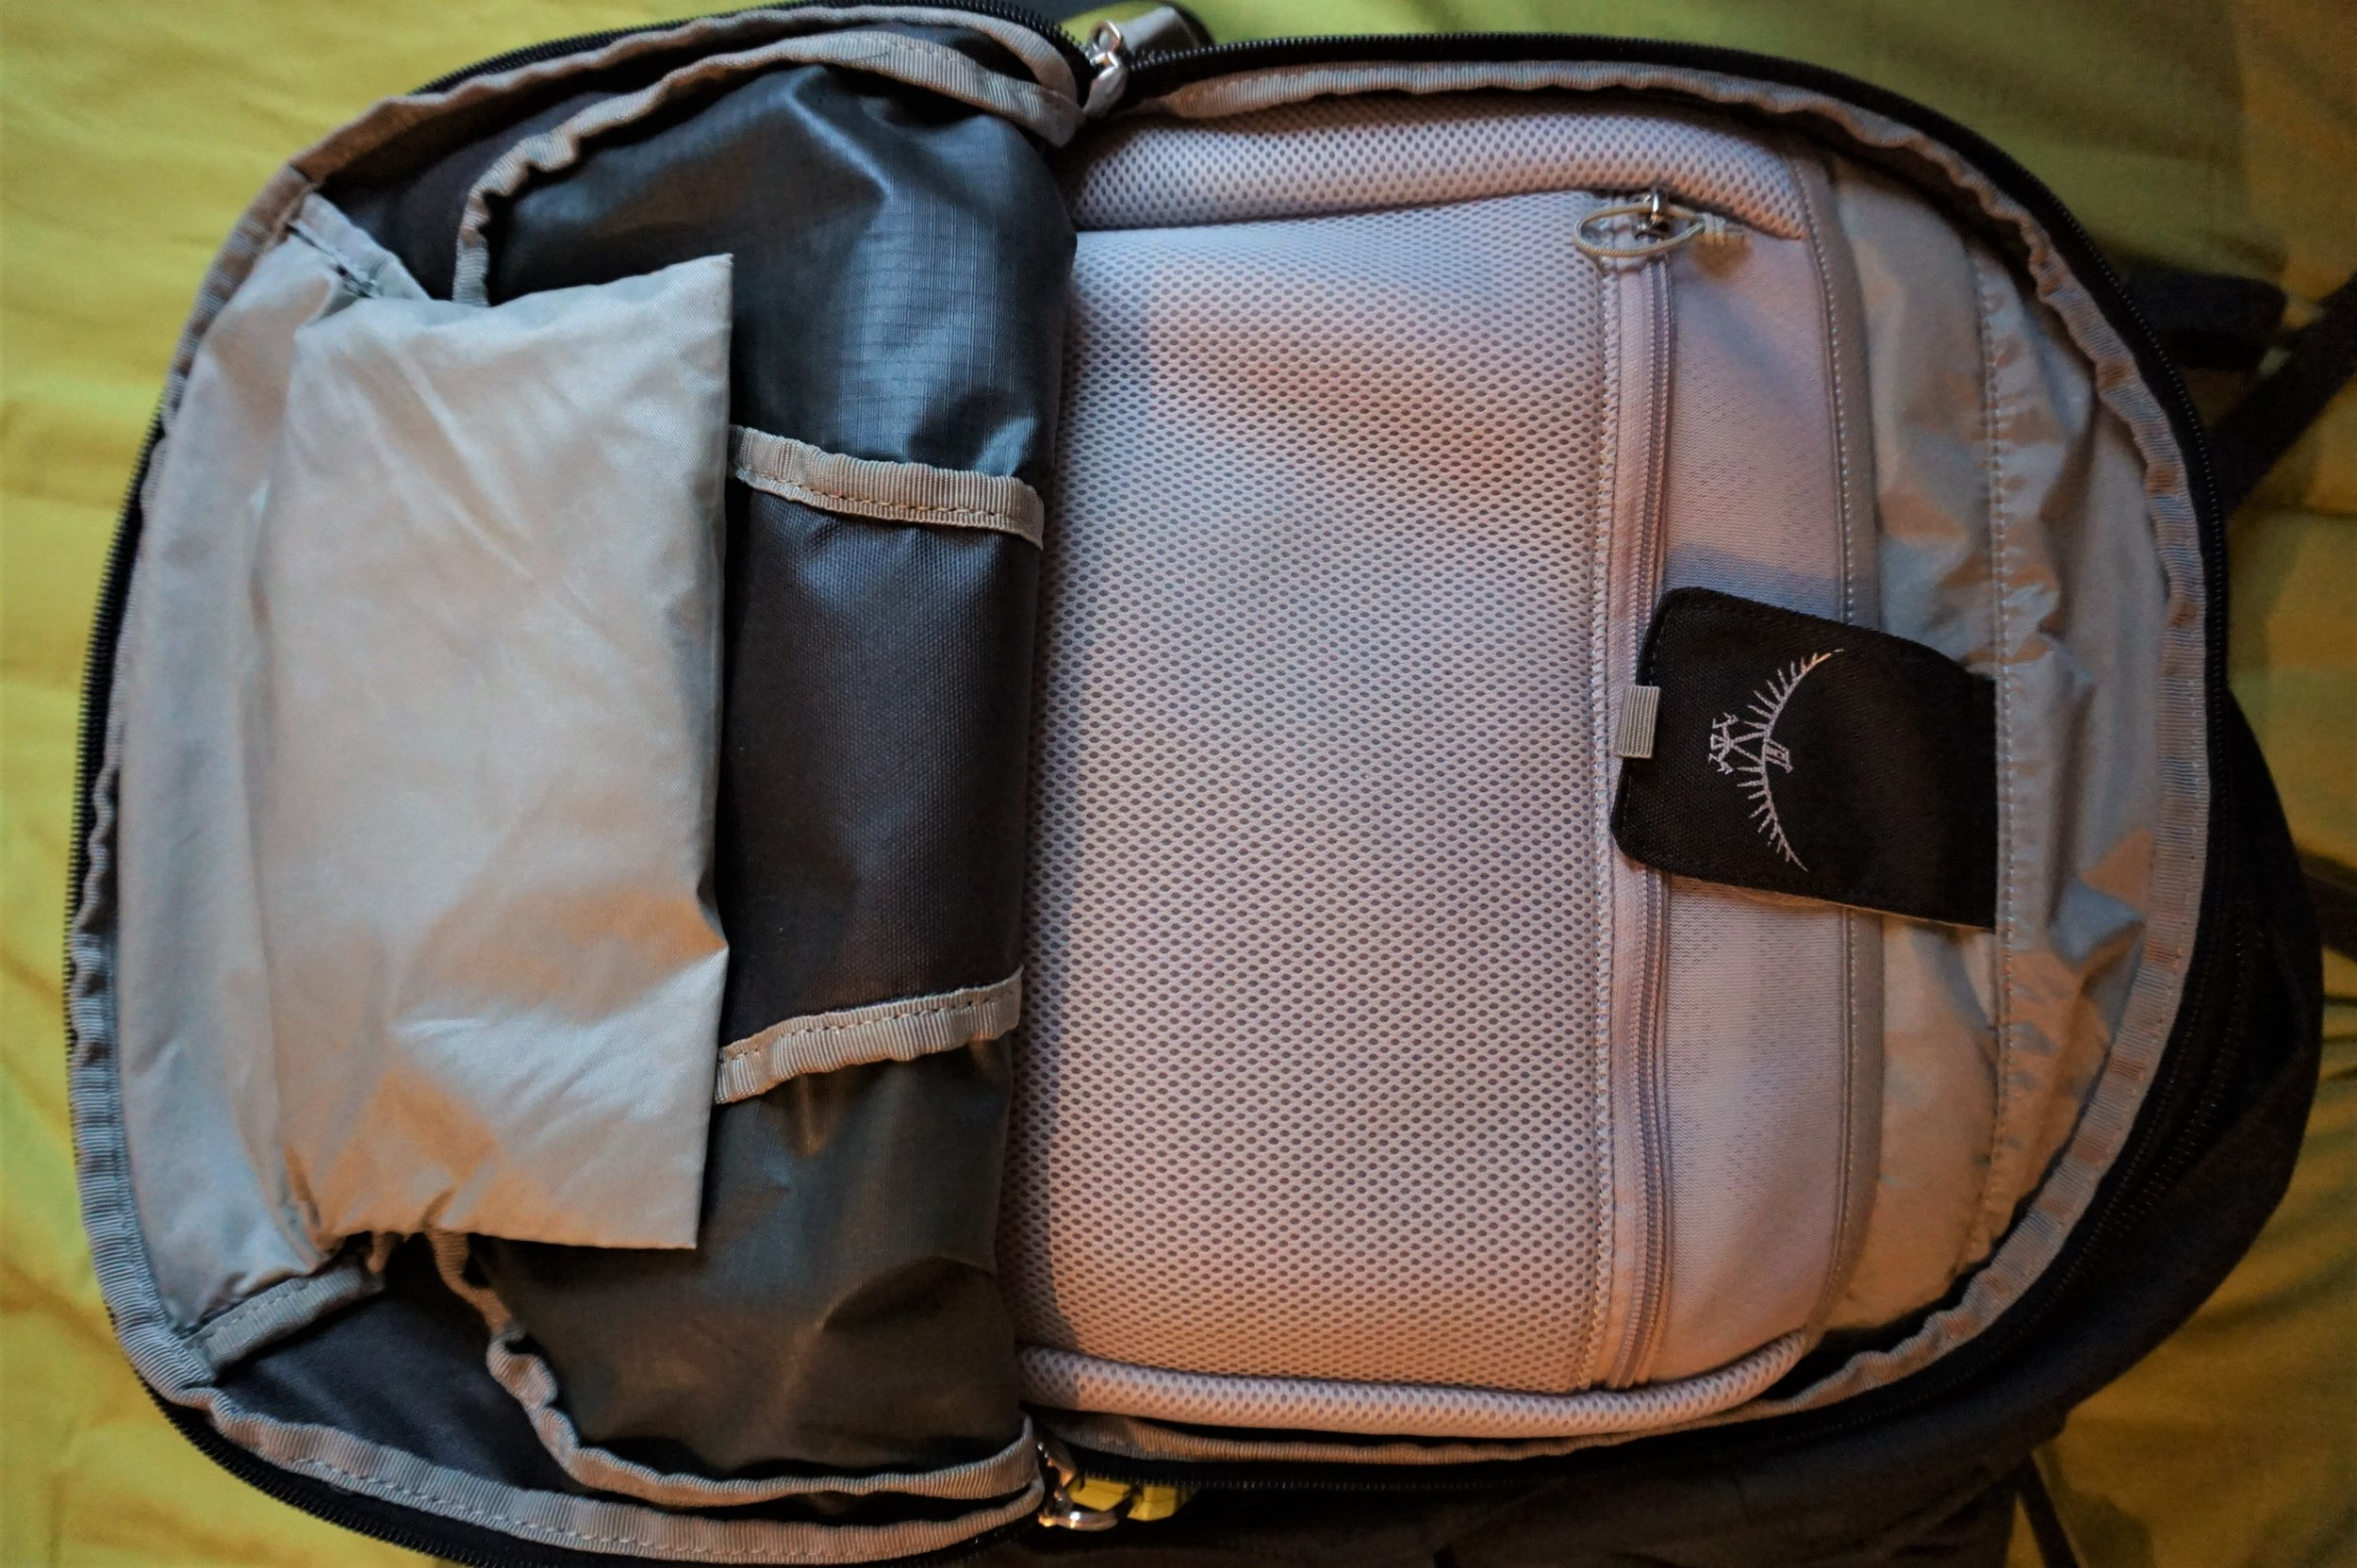 Osprey farpoint 40 is the best carry-on backpack for travelling Europe